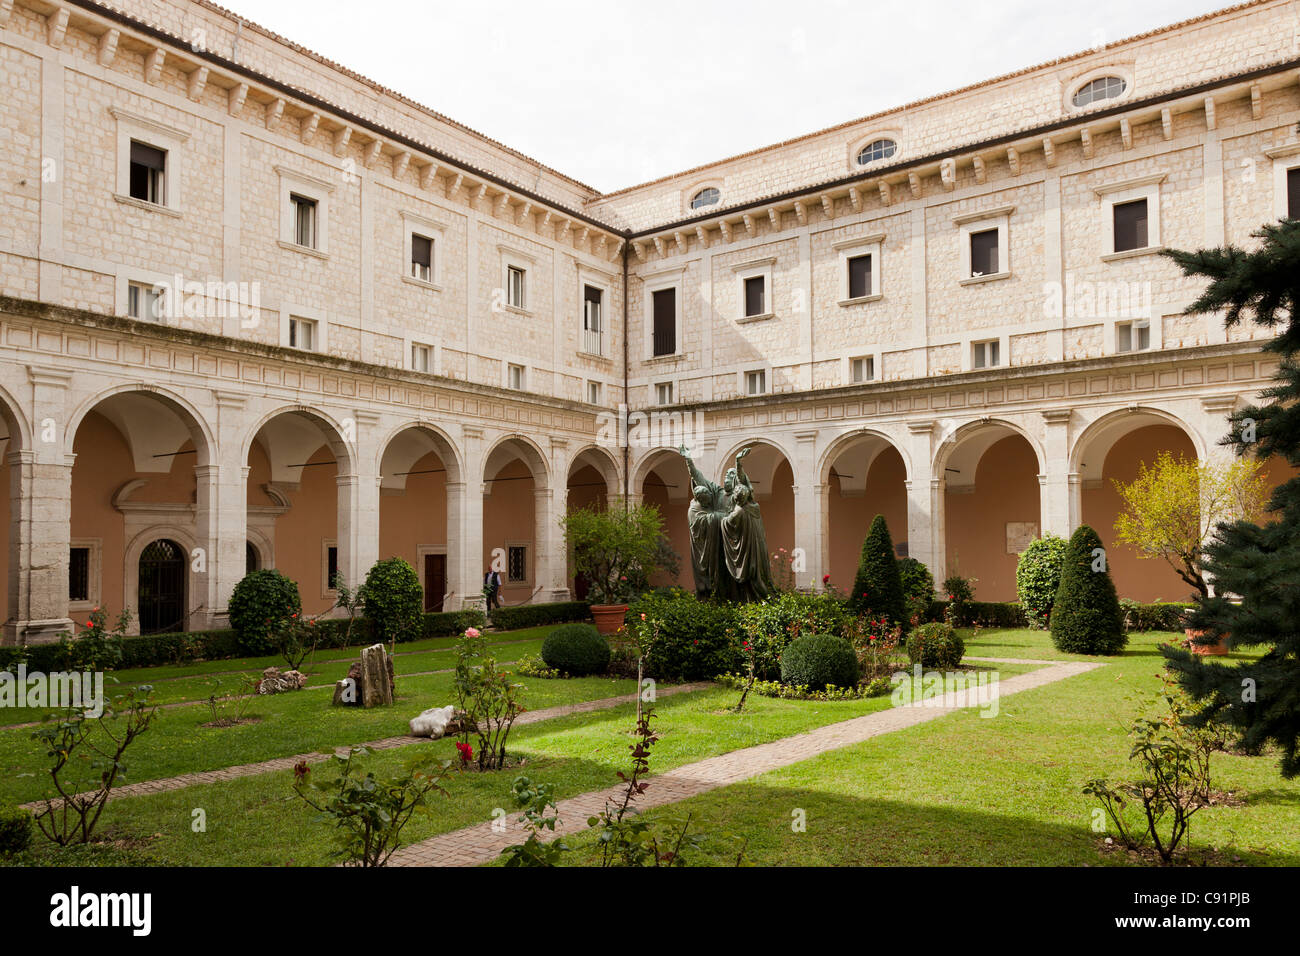 The entrance cloister of Monte cassino Abbey and the death of Saint Benedict Statue - Stock Image